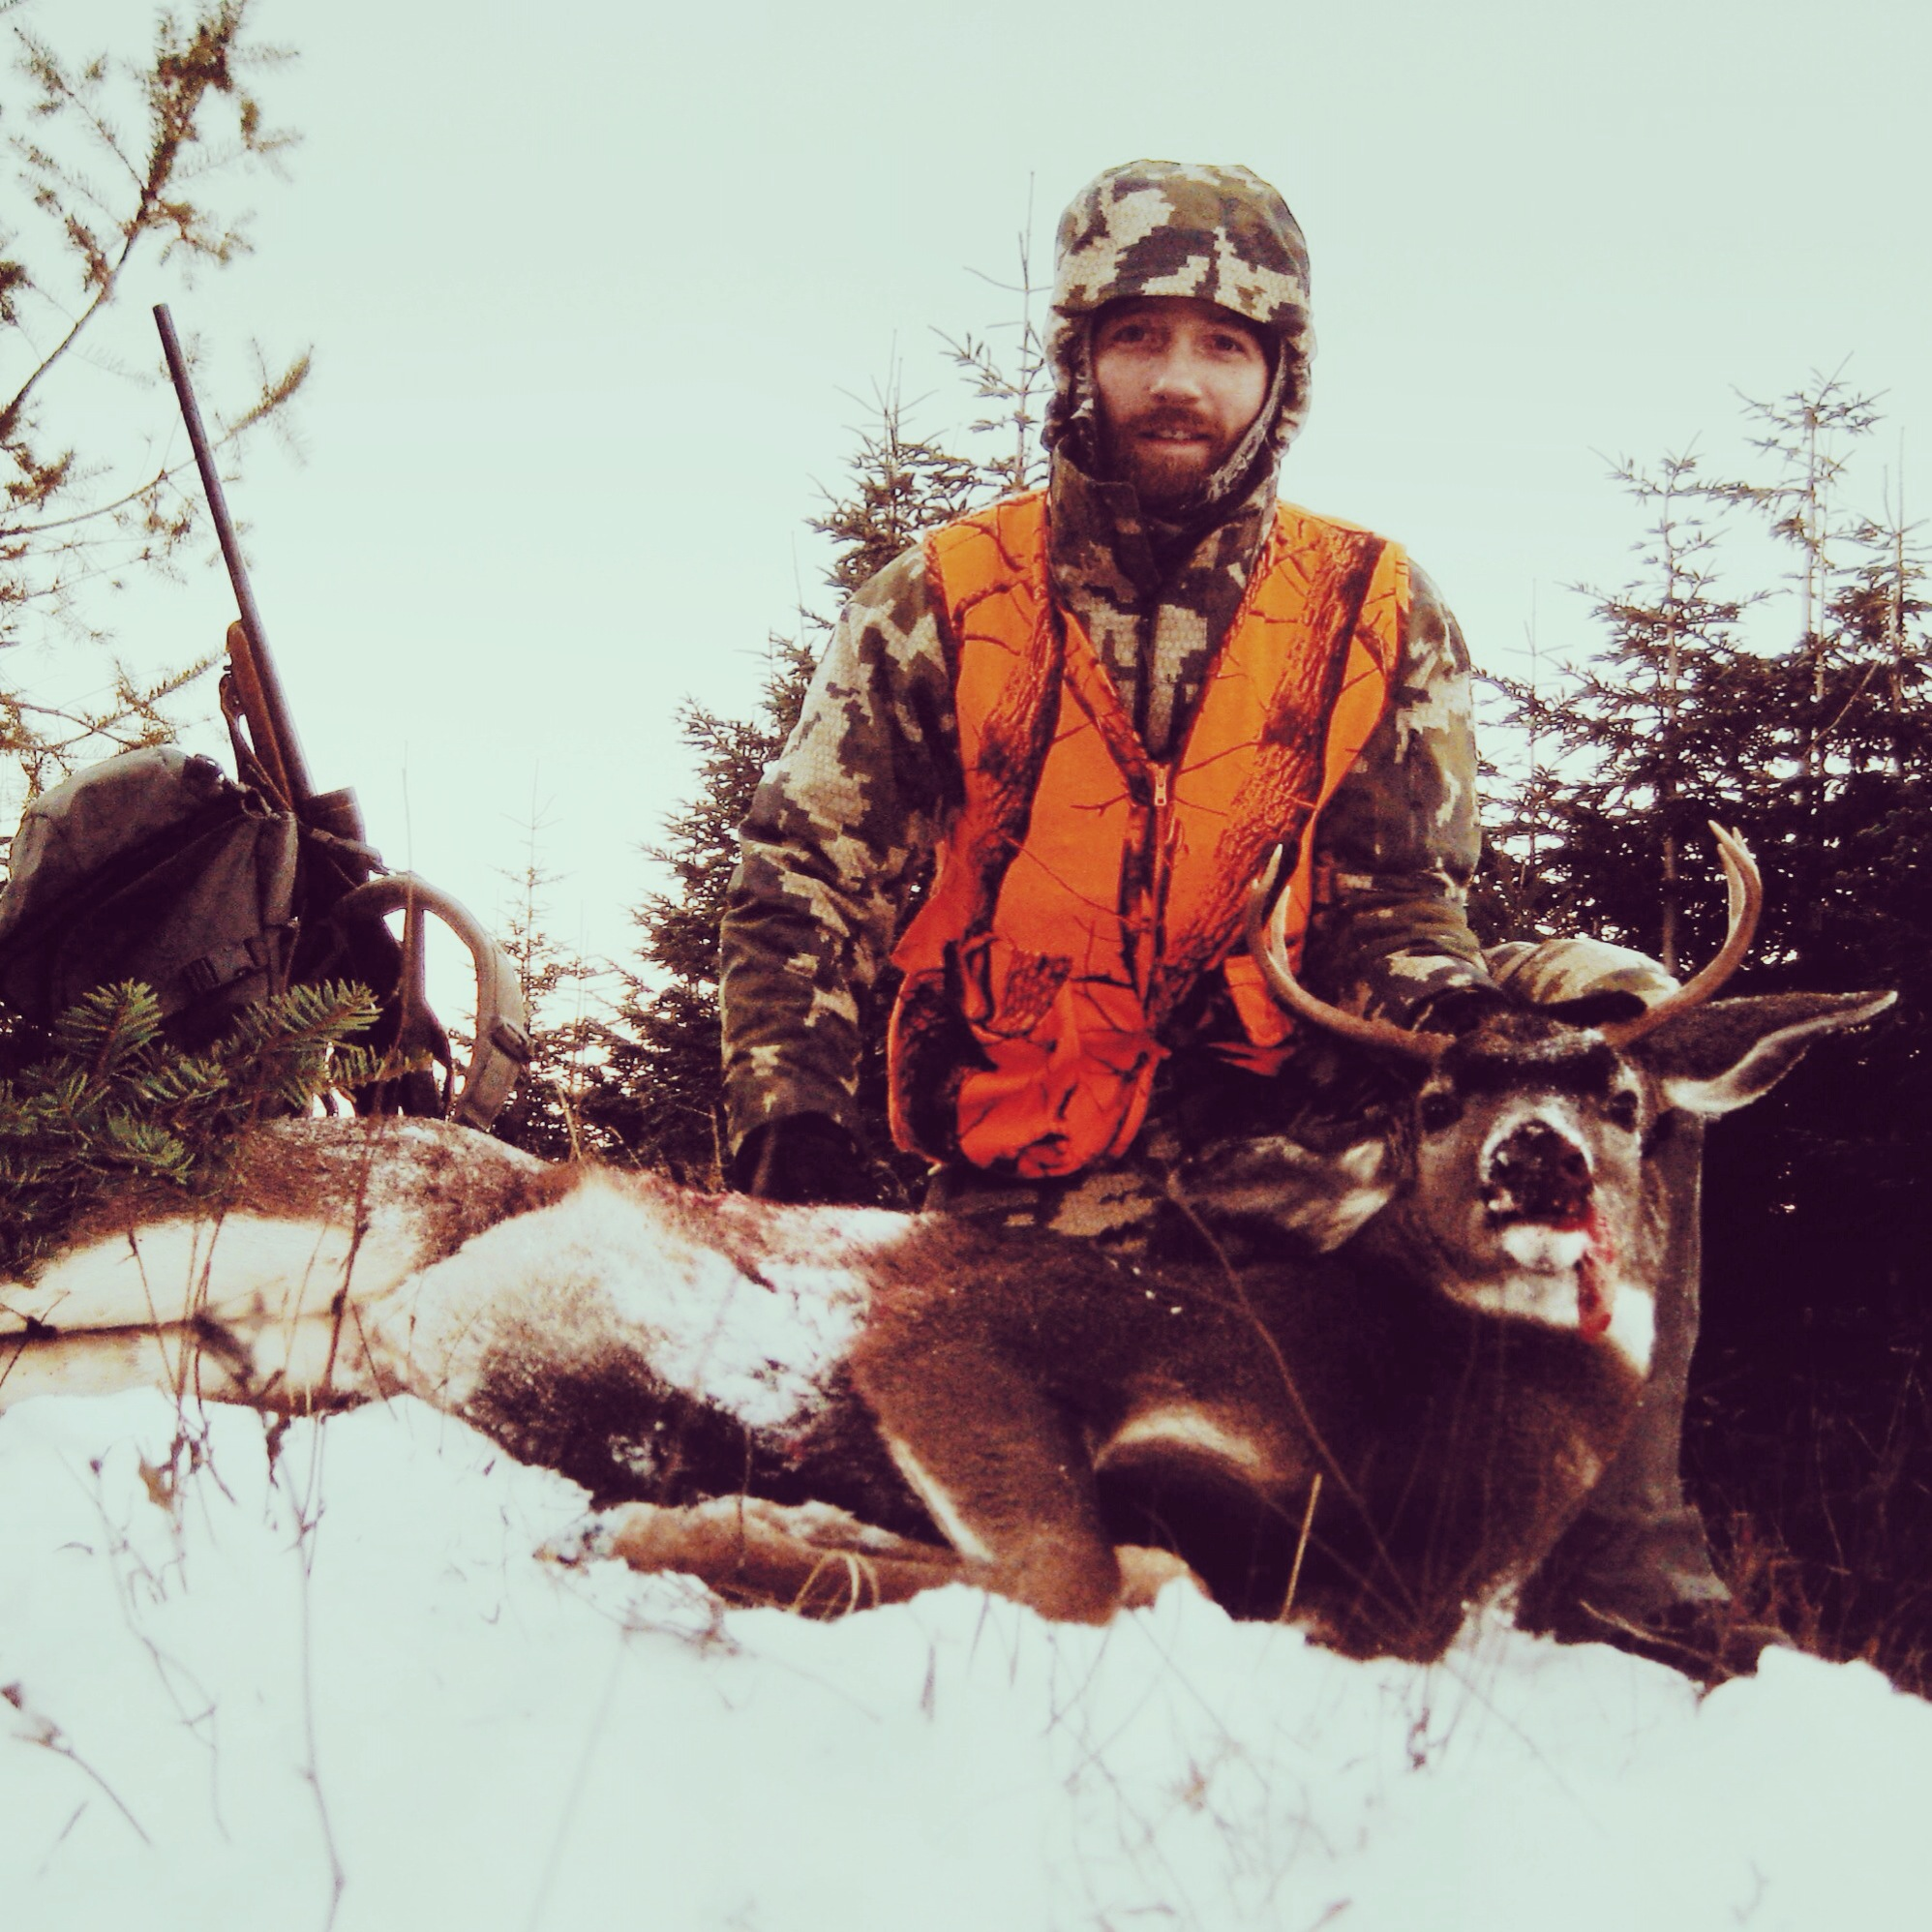 He's no record breaking buck, but he's a trophy in my book.